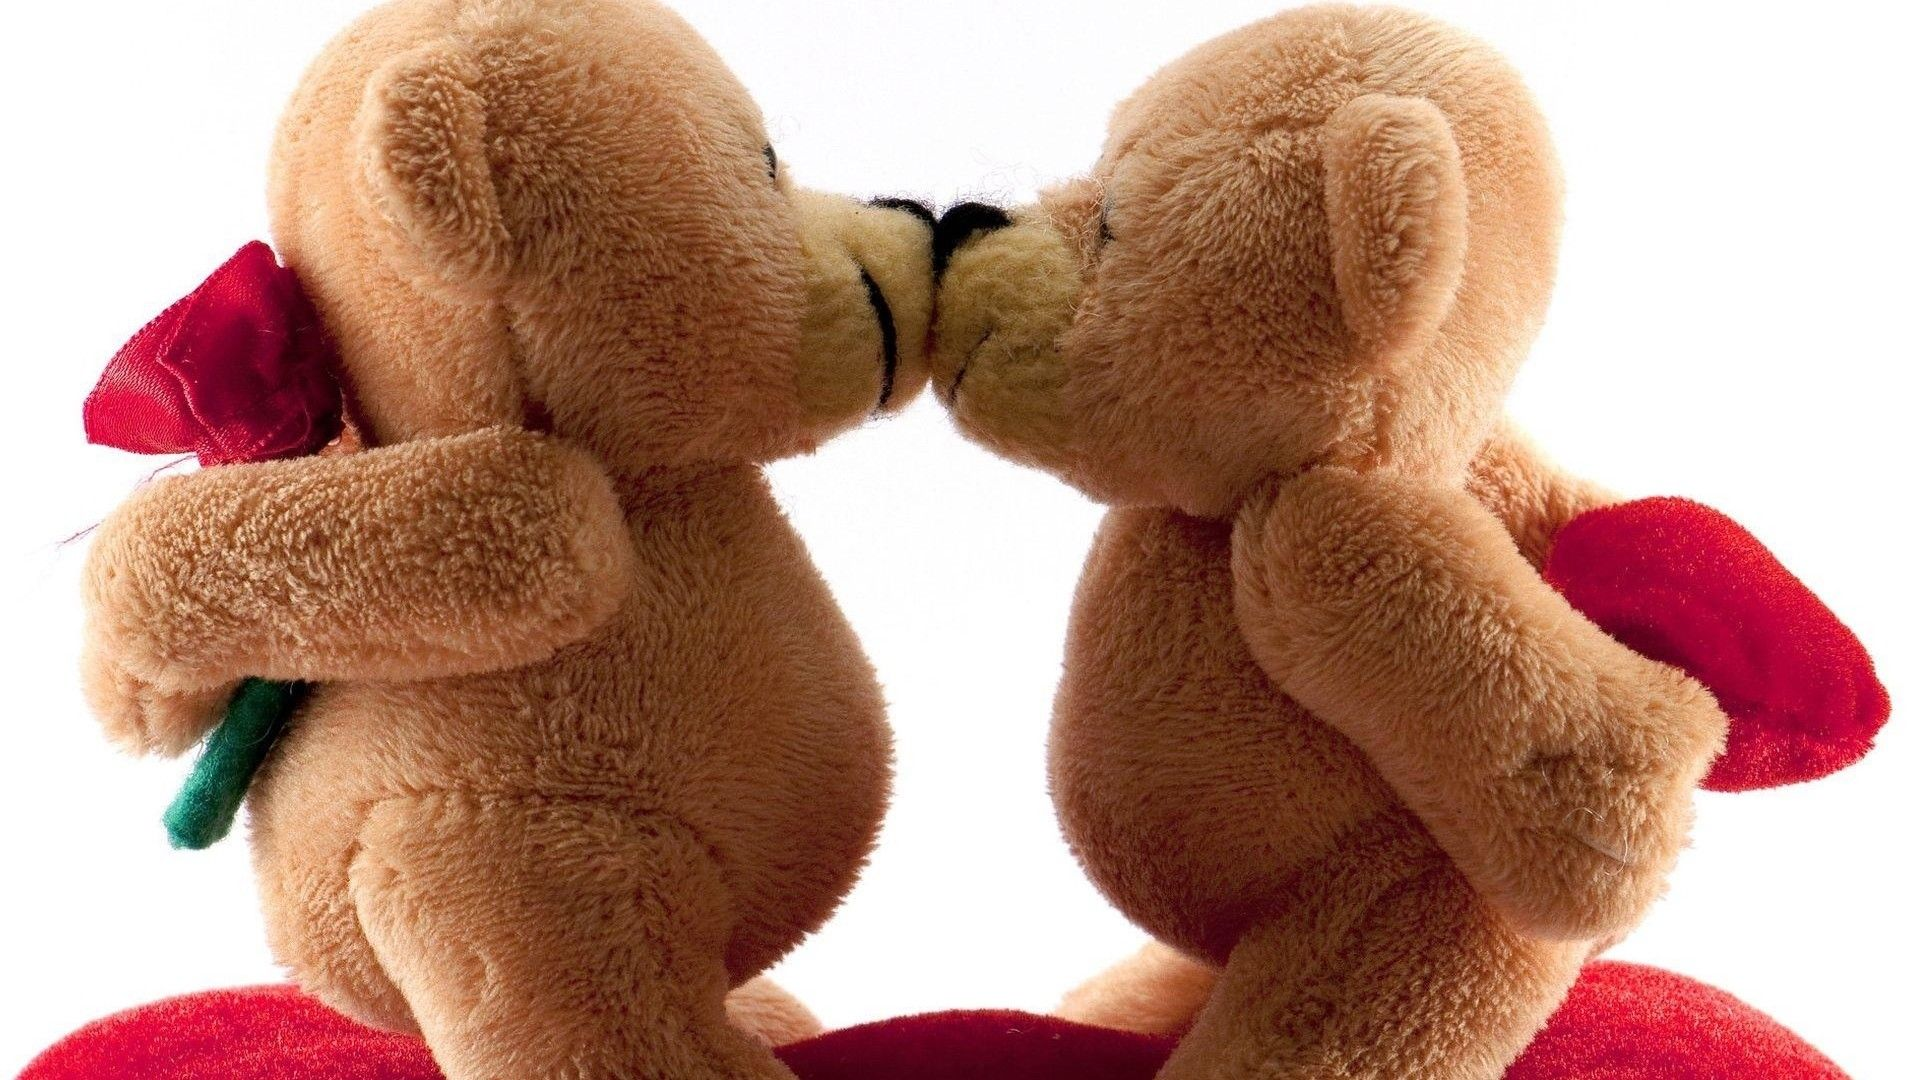 cute Gay Love Wallpaper : Kissing Teddy Bears Happy Valentines Day Pictures, Photos, and Images for Facebook, Tumblr ...